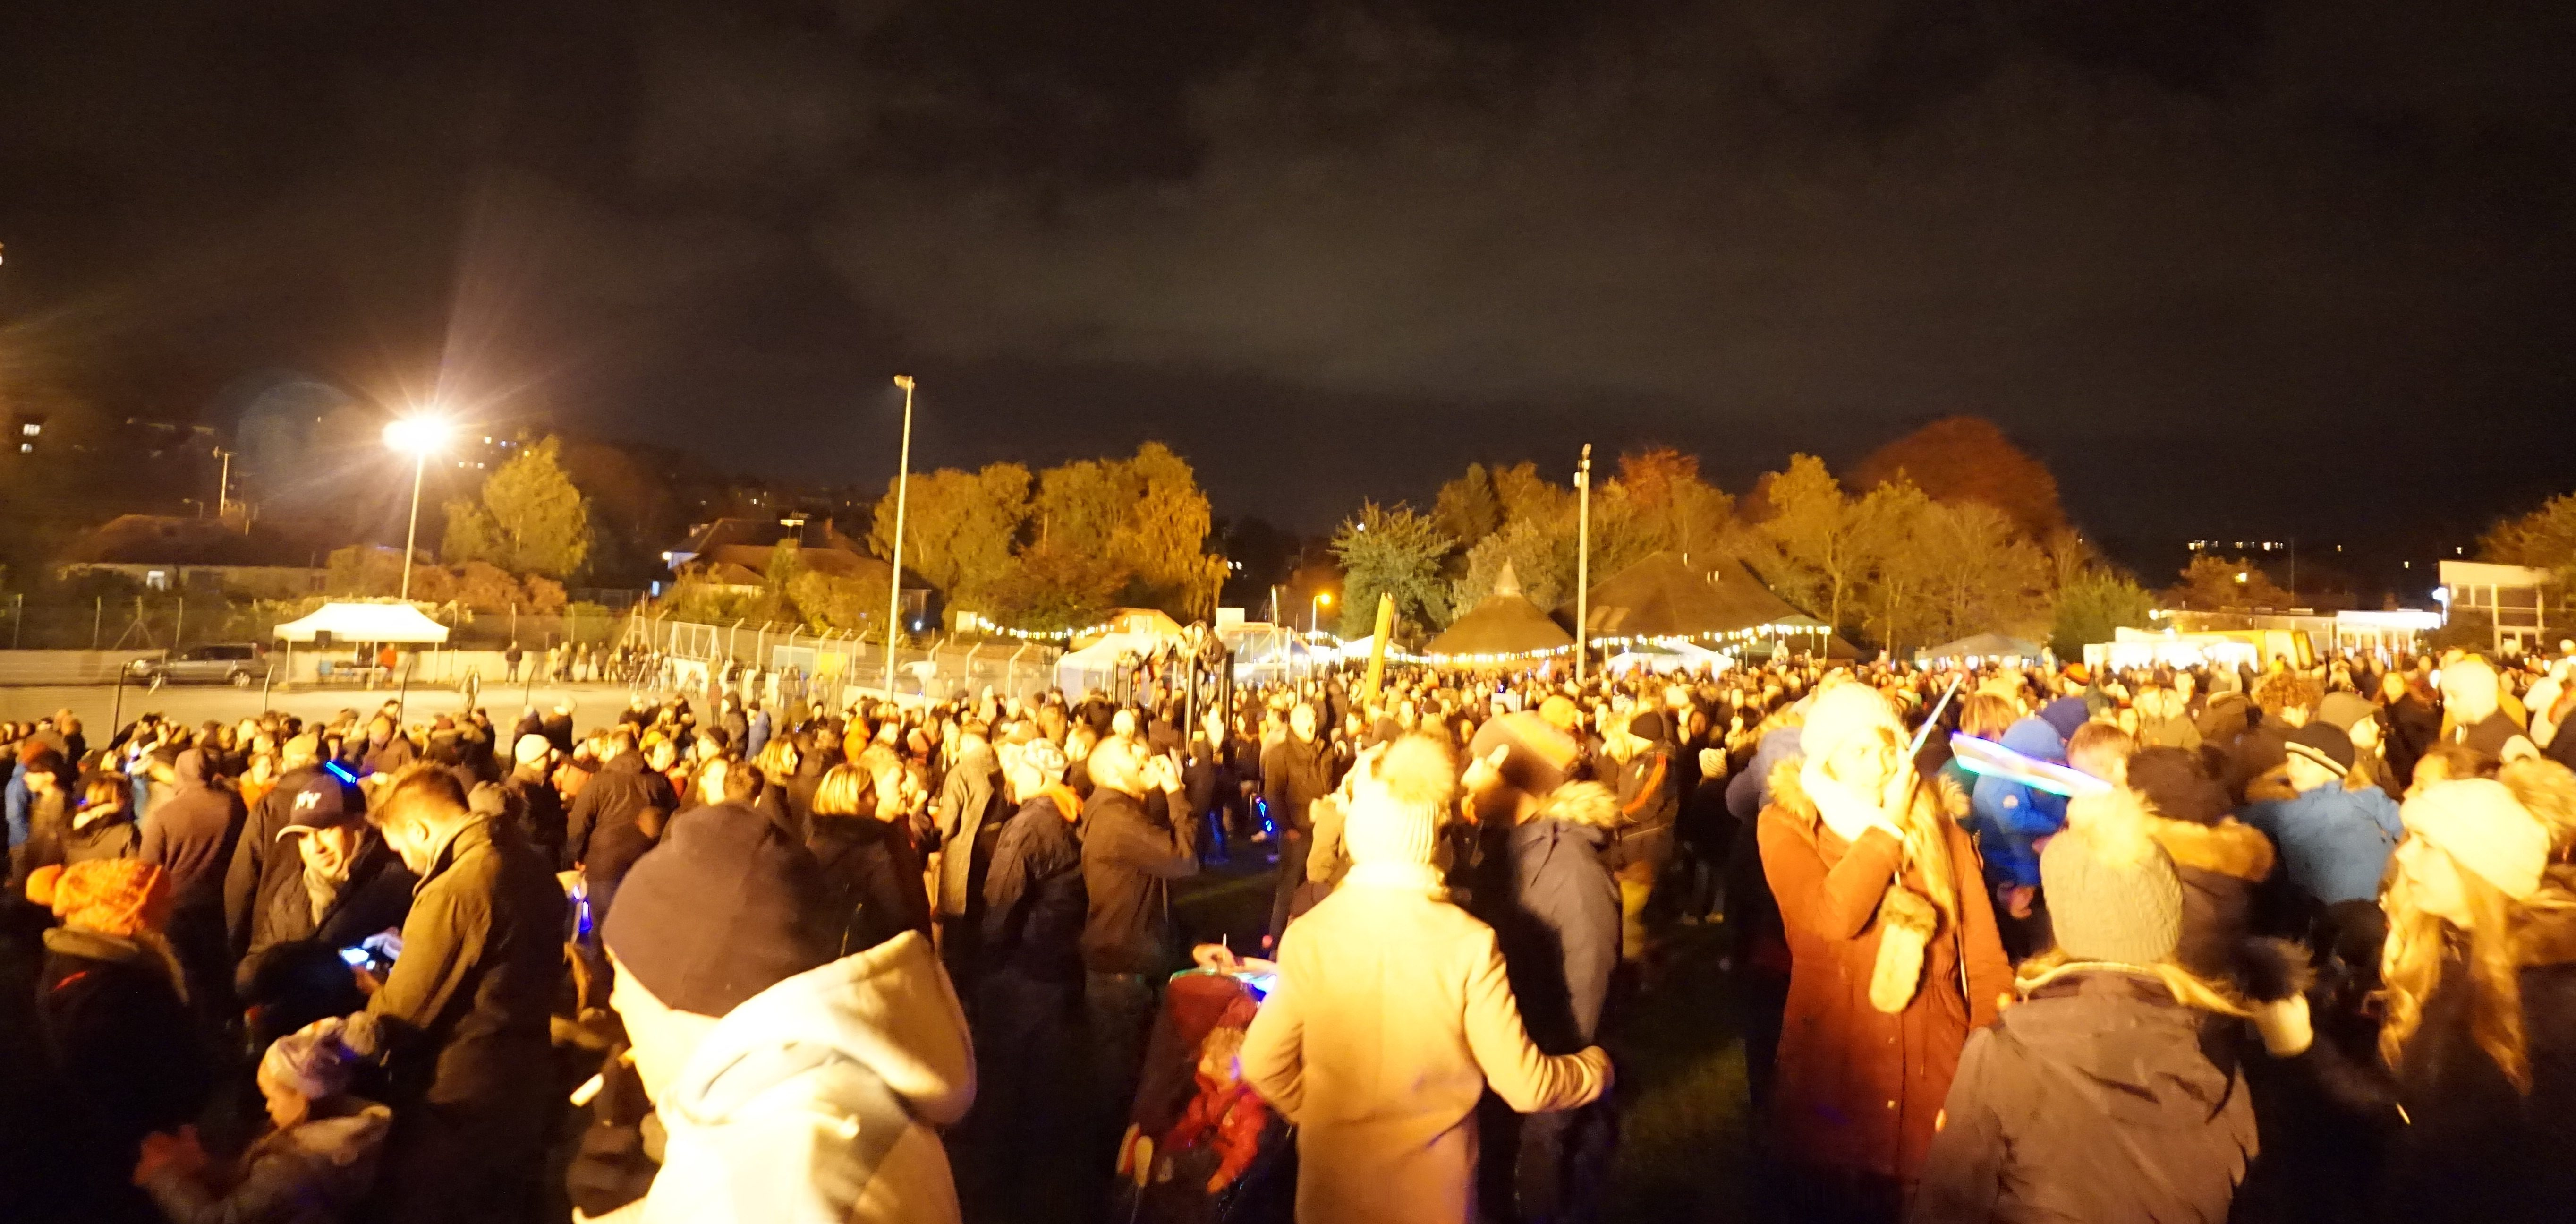 A huge crowd of people fill a field at night while waiting for the fireworks to being.